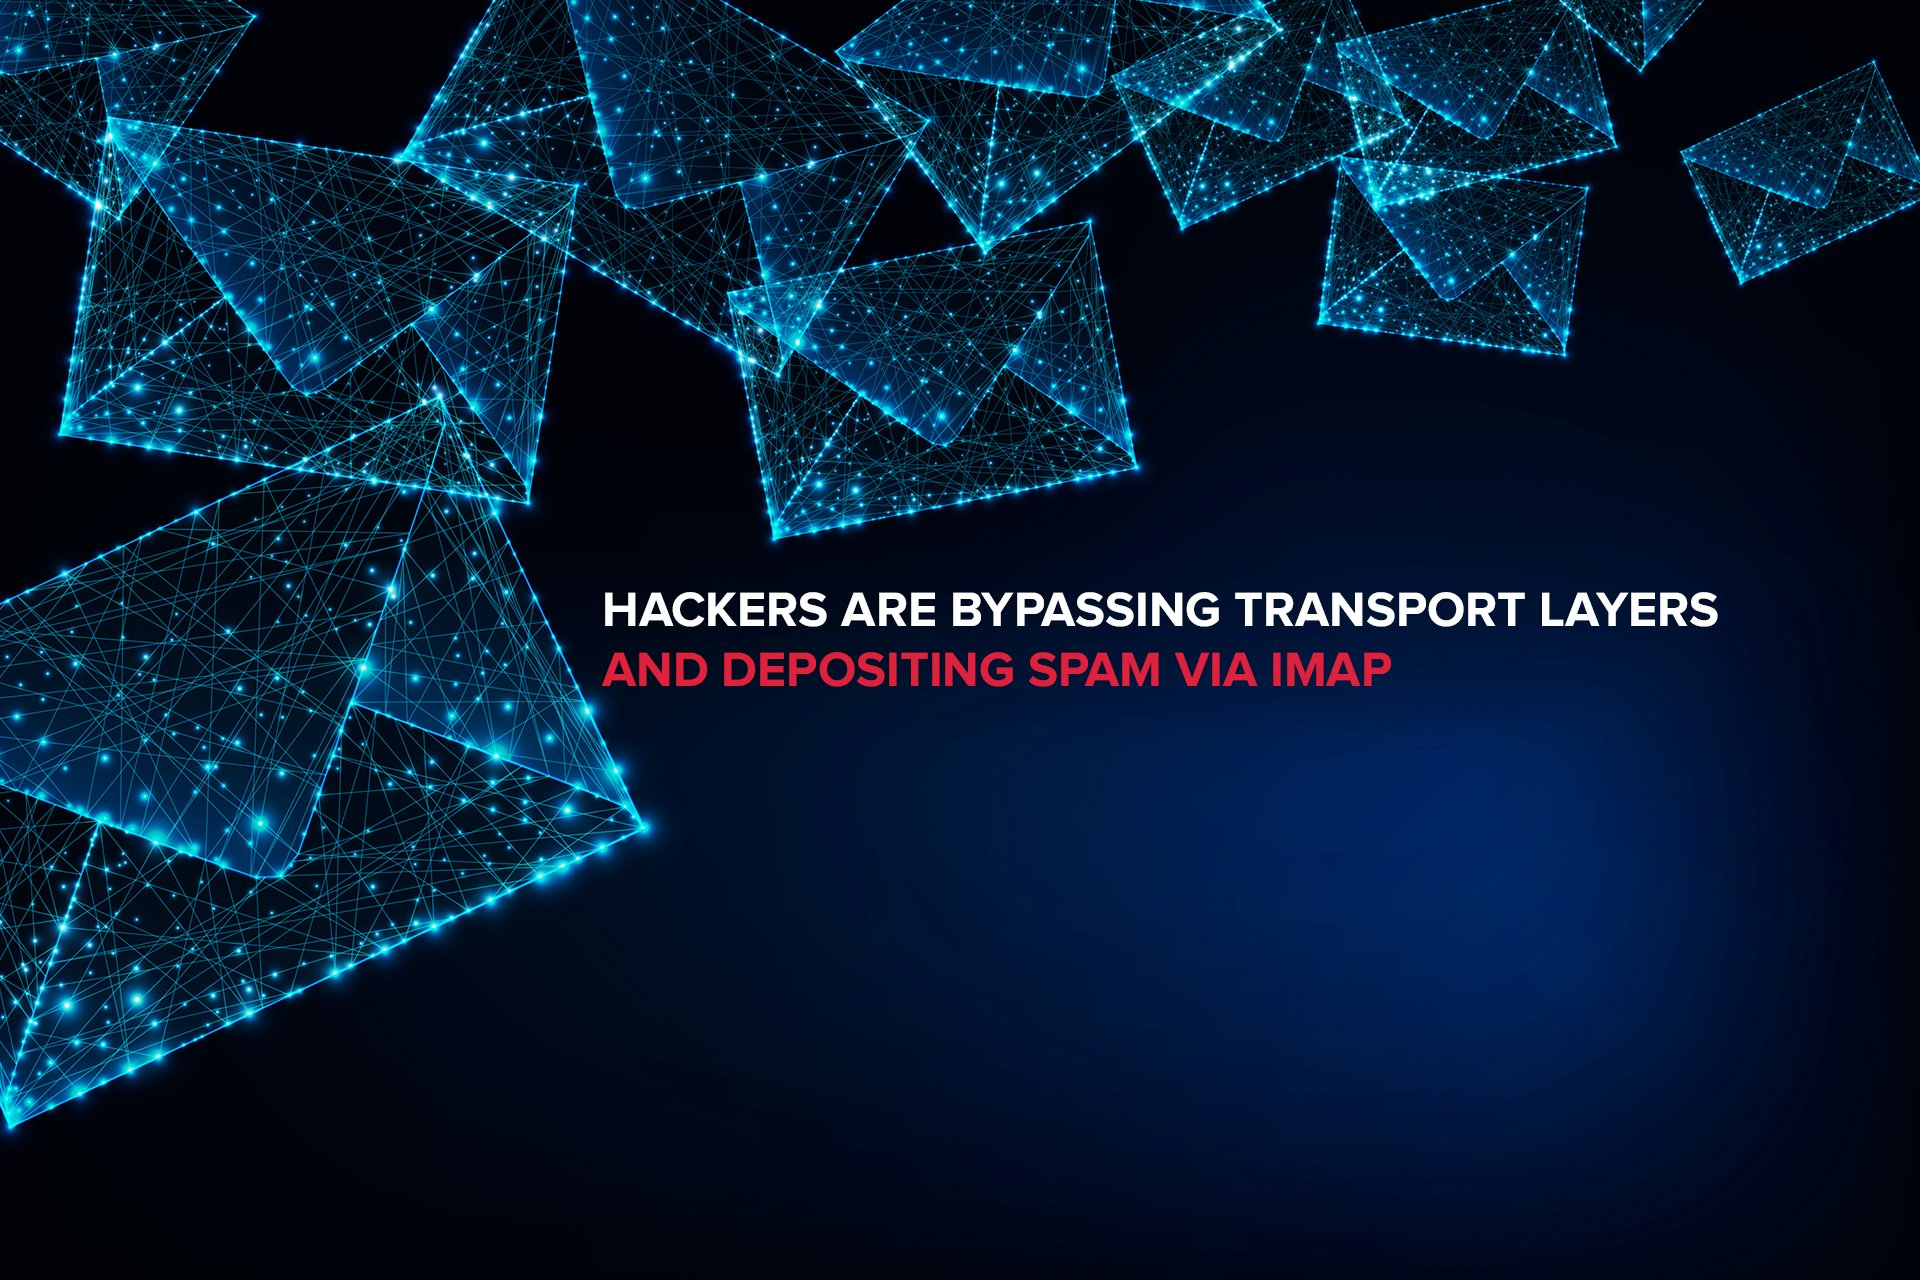 Hackers are Bypassing Transport Layers and Depositing Spam via IMAP